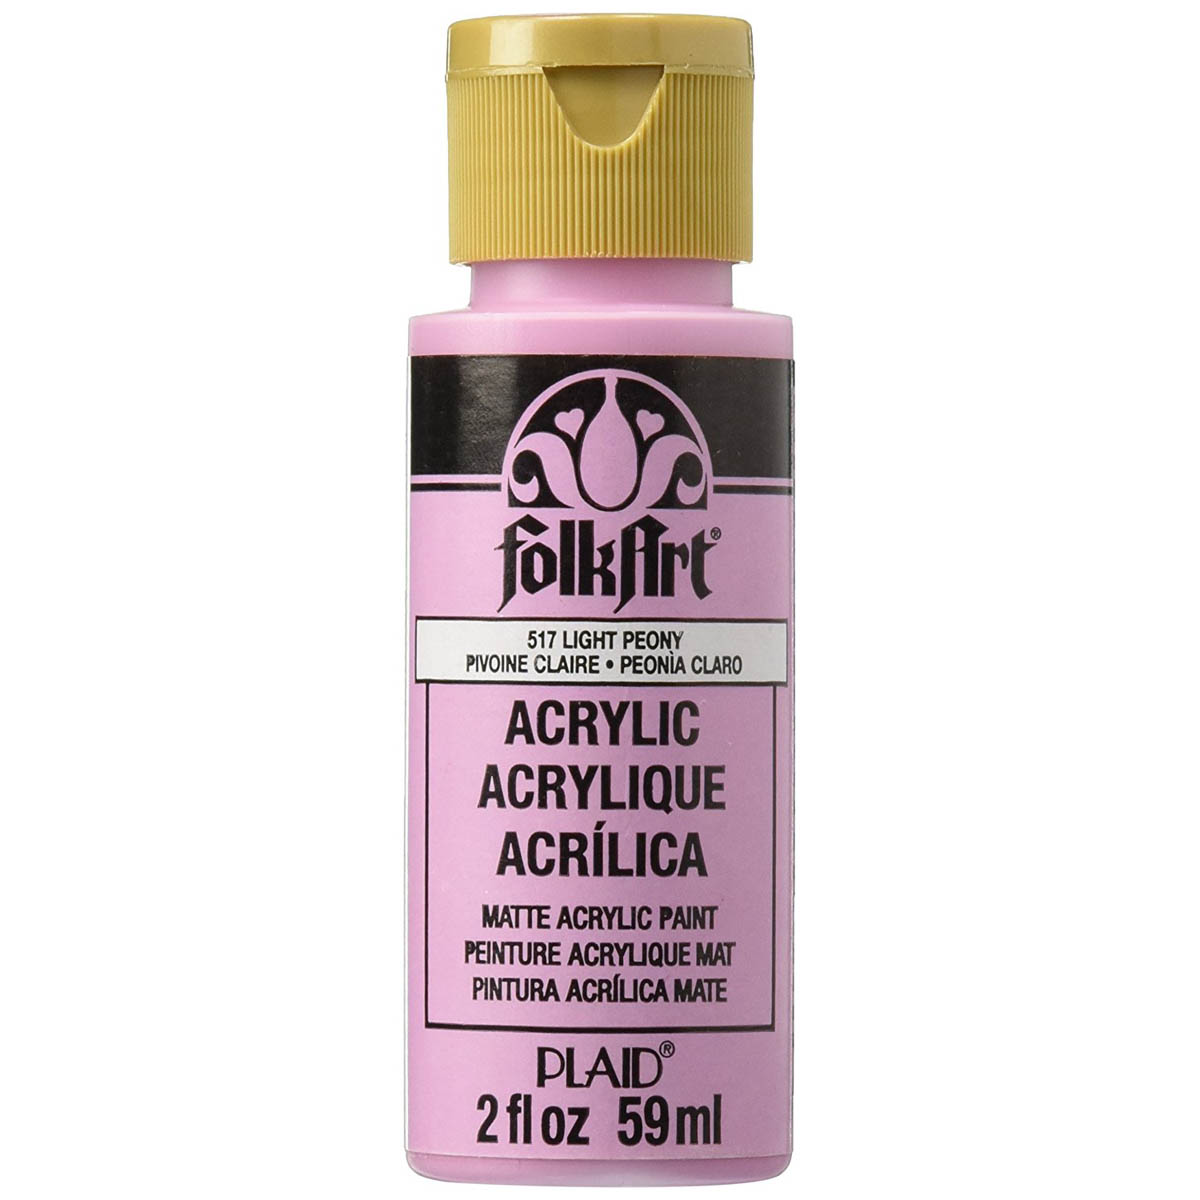 FolkArt ® Acrylic Colors - Light Peony, 2 oz. - 517